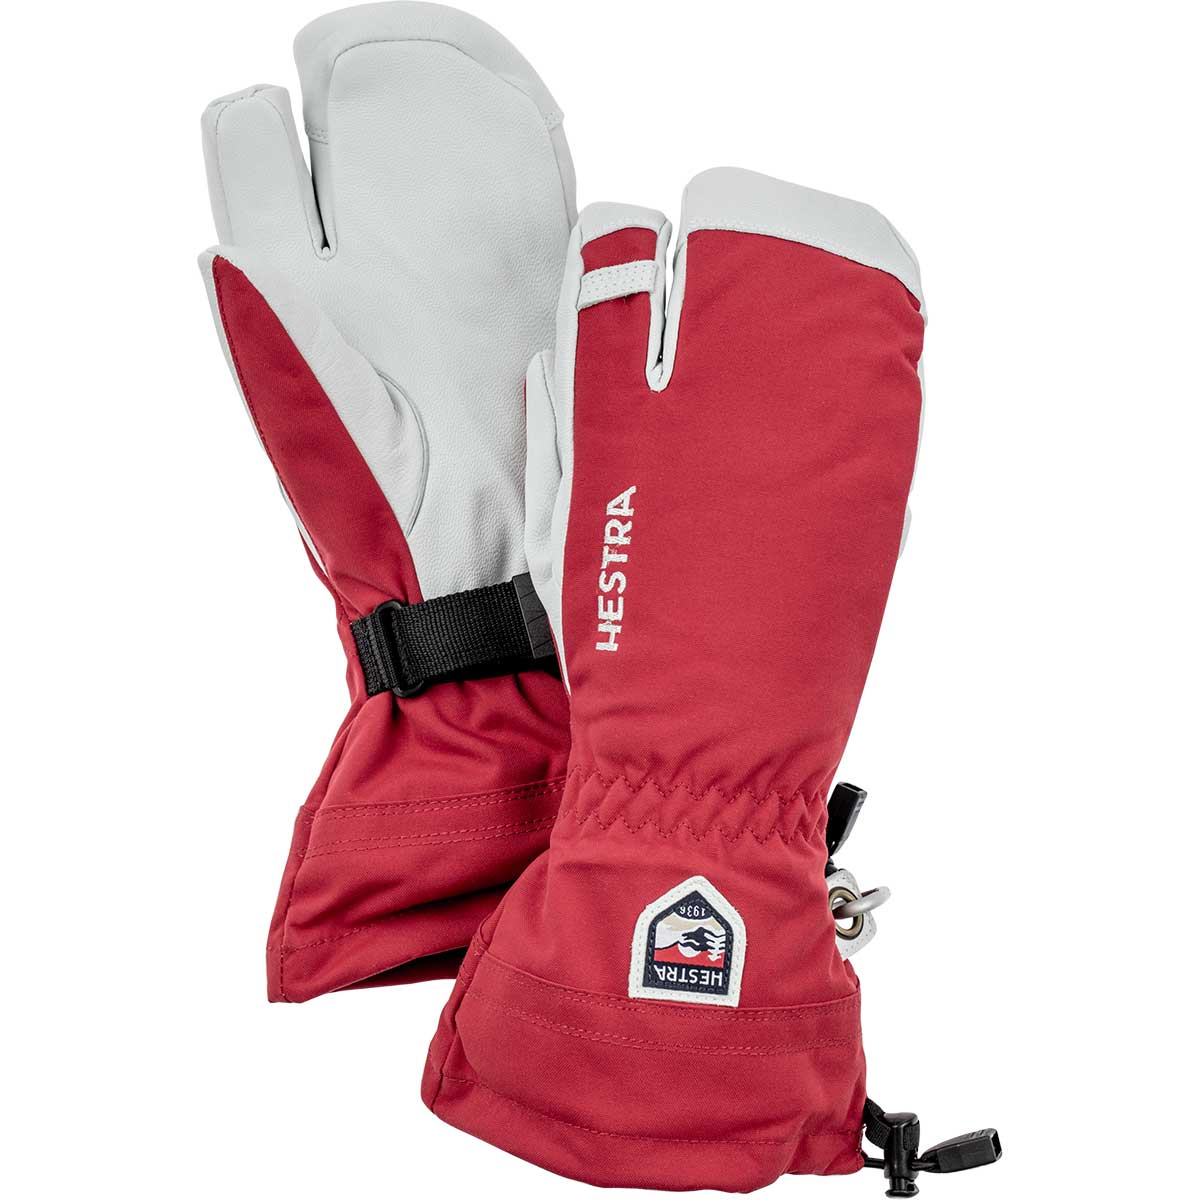 Hestra Army Leather Heli 3-Finger Glove in red